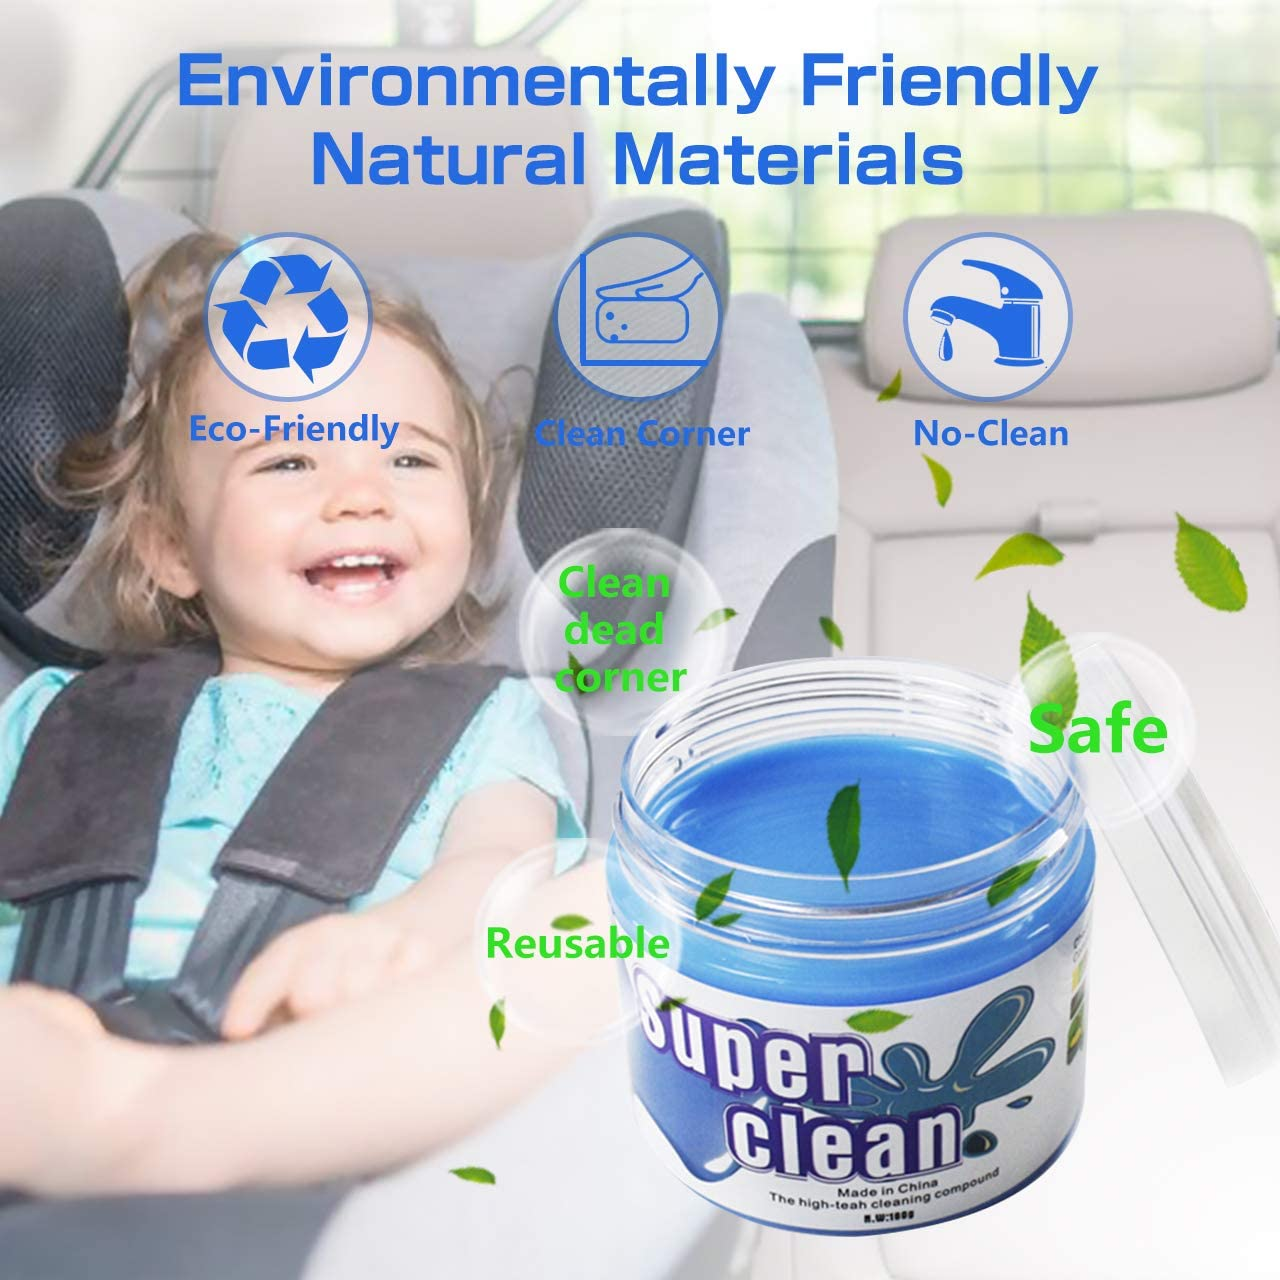 Car Interior Detailing Cleaner Universal Dust Cleaning Gel For PC Tablet Laptop Keyboards, Cameras, Air Vents